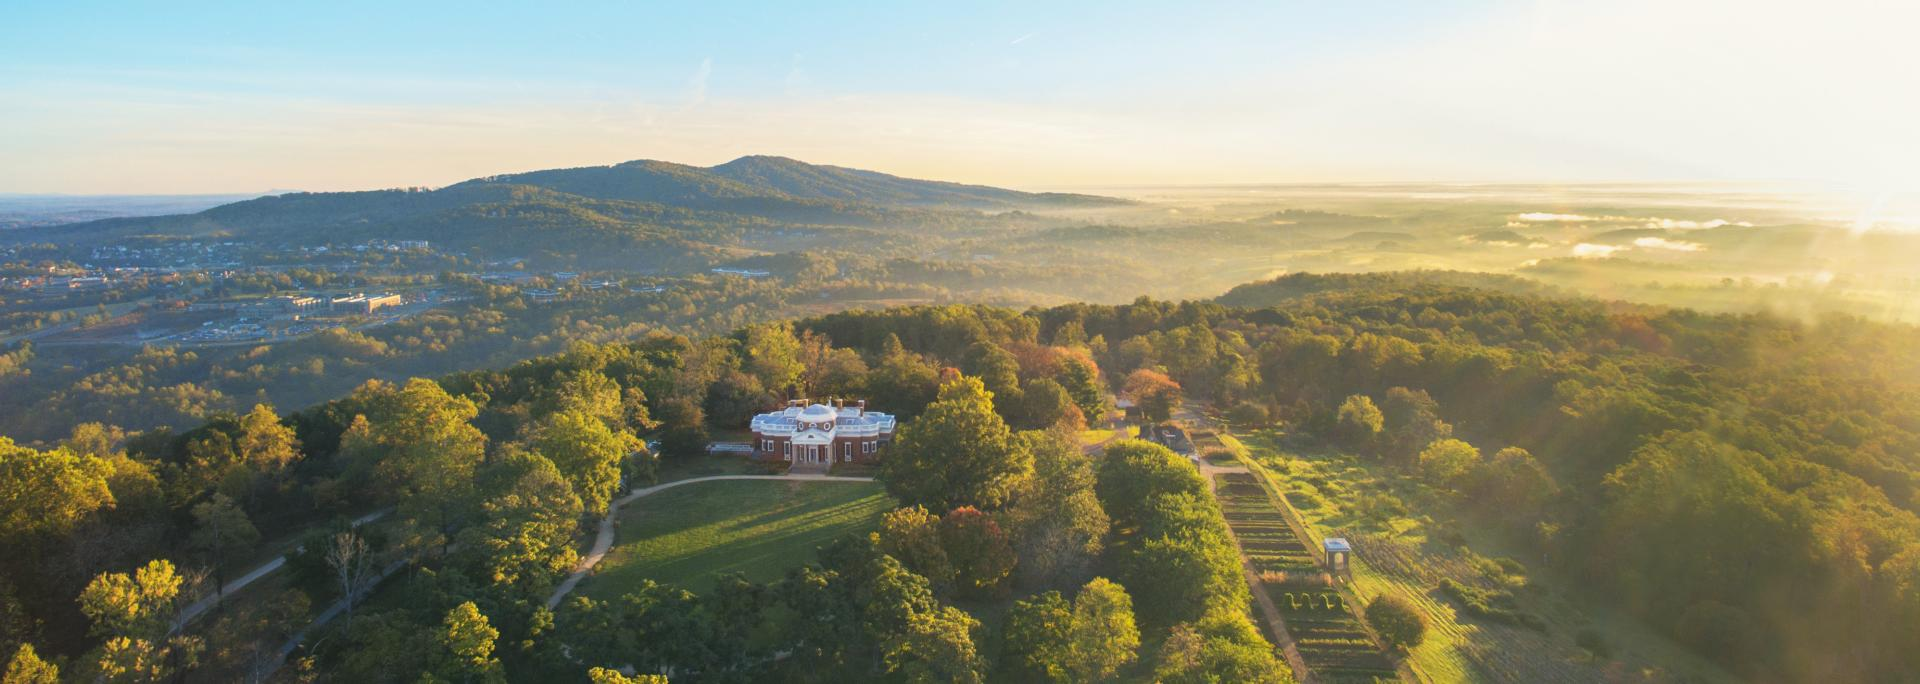 Aerial photo of Monticello